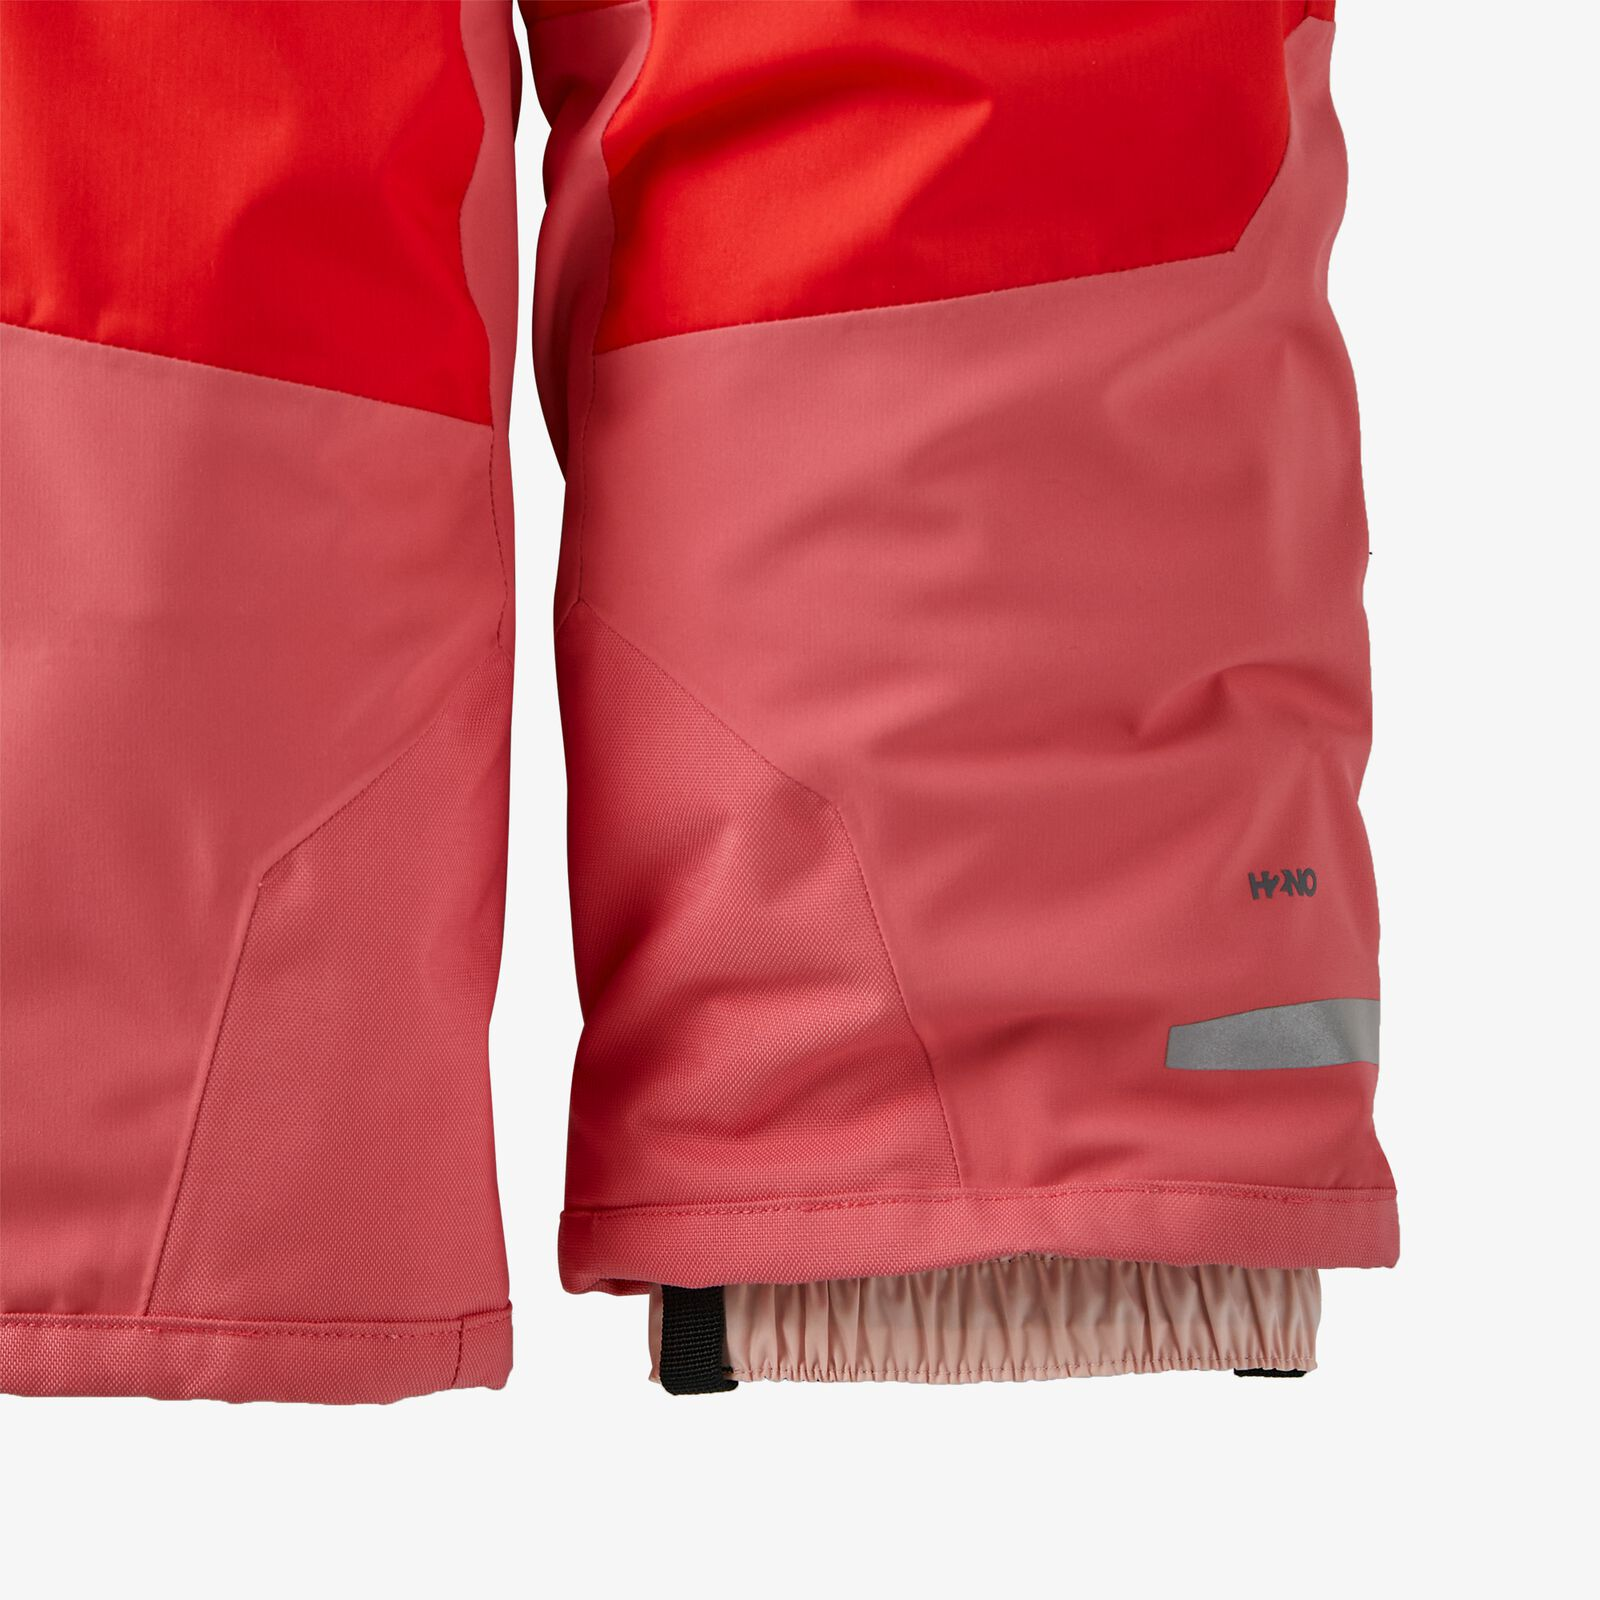 Snow-Pile-Patagonias-Recycled-Jackets-and-Bibs-for-Youngsters-bib-GAITER